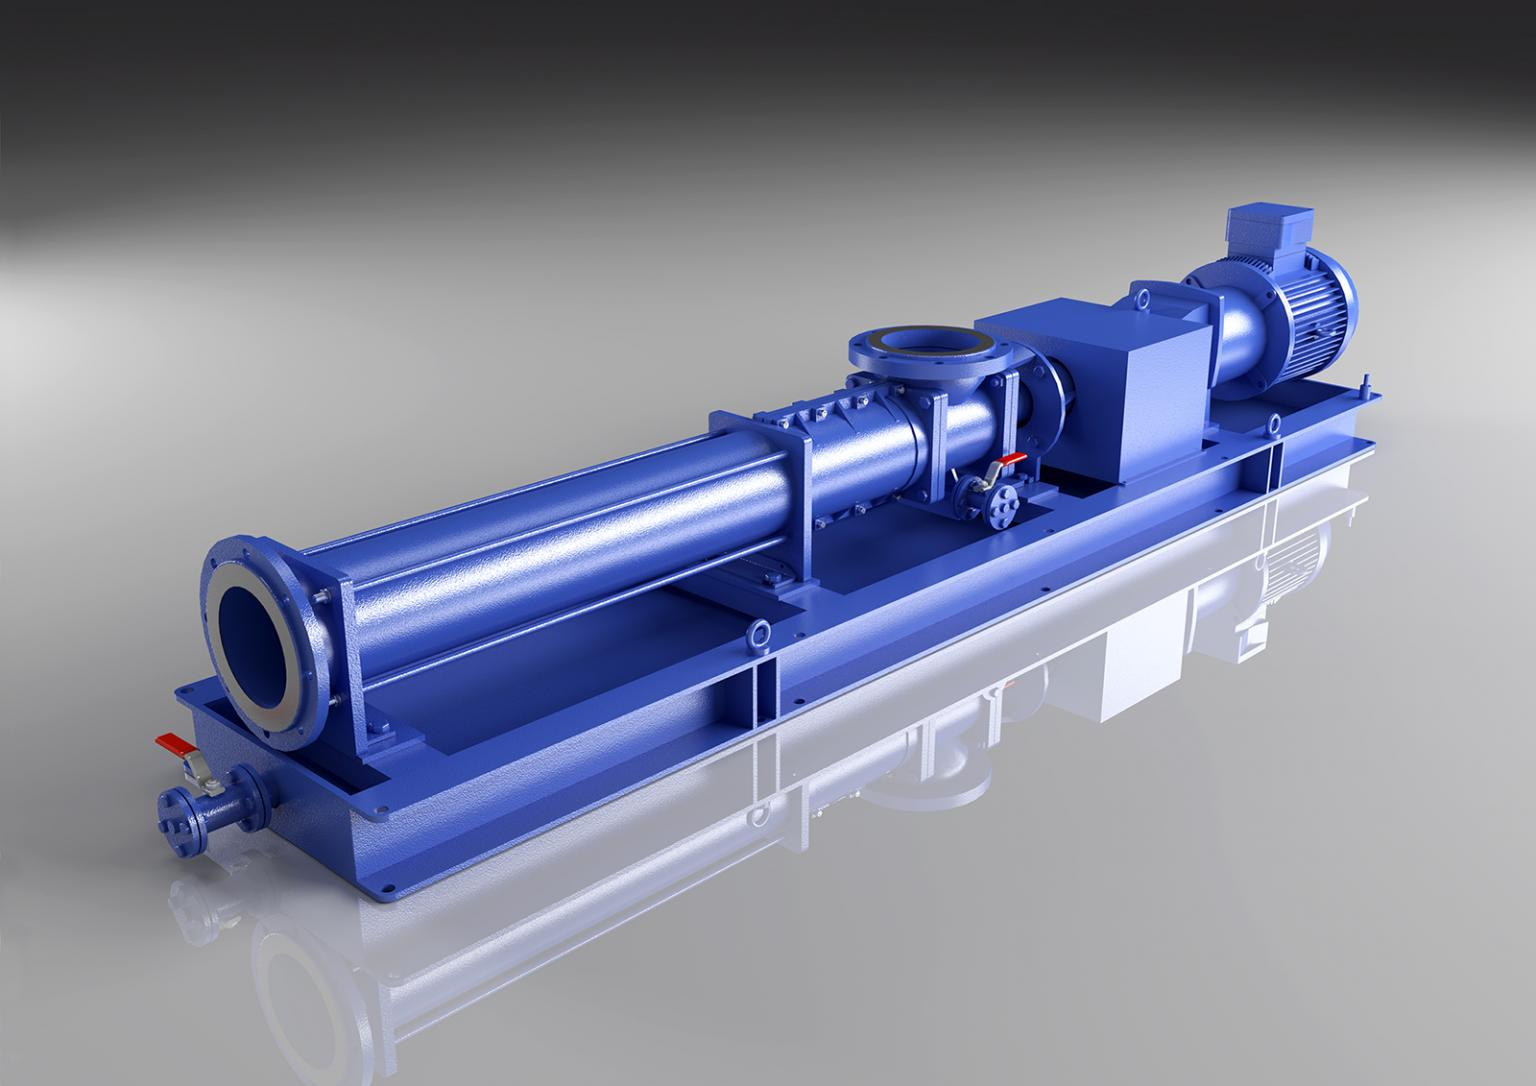 The launch of new API 676 compliant progressing cavity (PC) pumps has focused attention on the ability of Mono to supply pumping solutions designed for a wide range of applications in the oil and gas industry